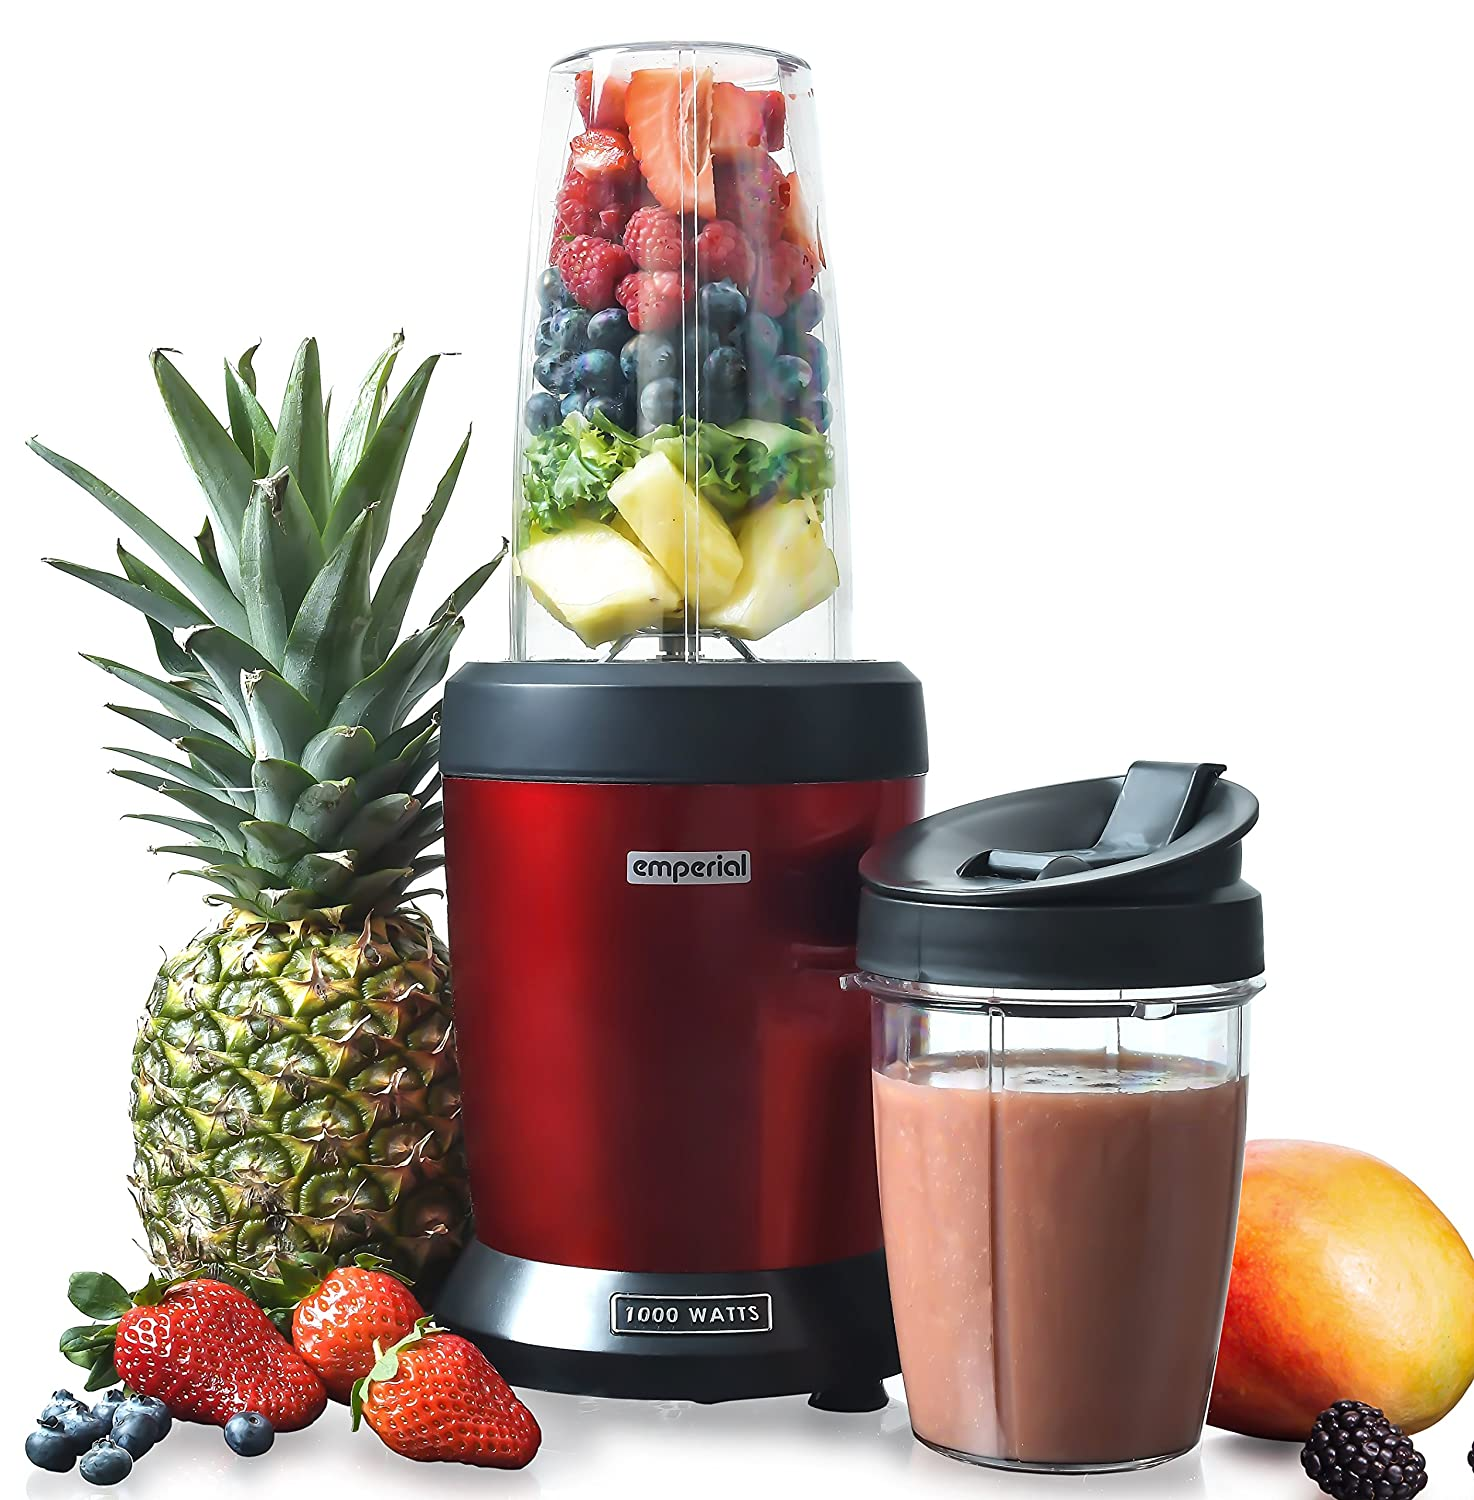 Emperial Blender, Smoothie Maker, Personal blender, 1000W, Red, includes BPA Free 800ml and 500ml Cups